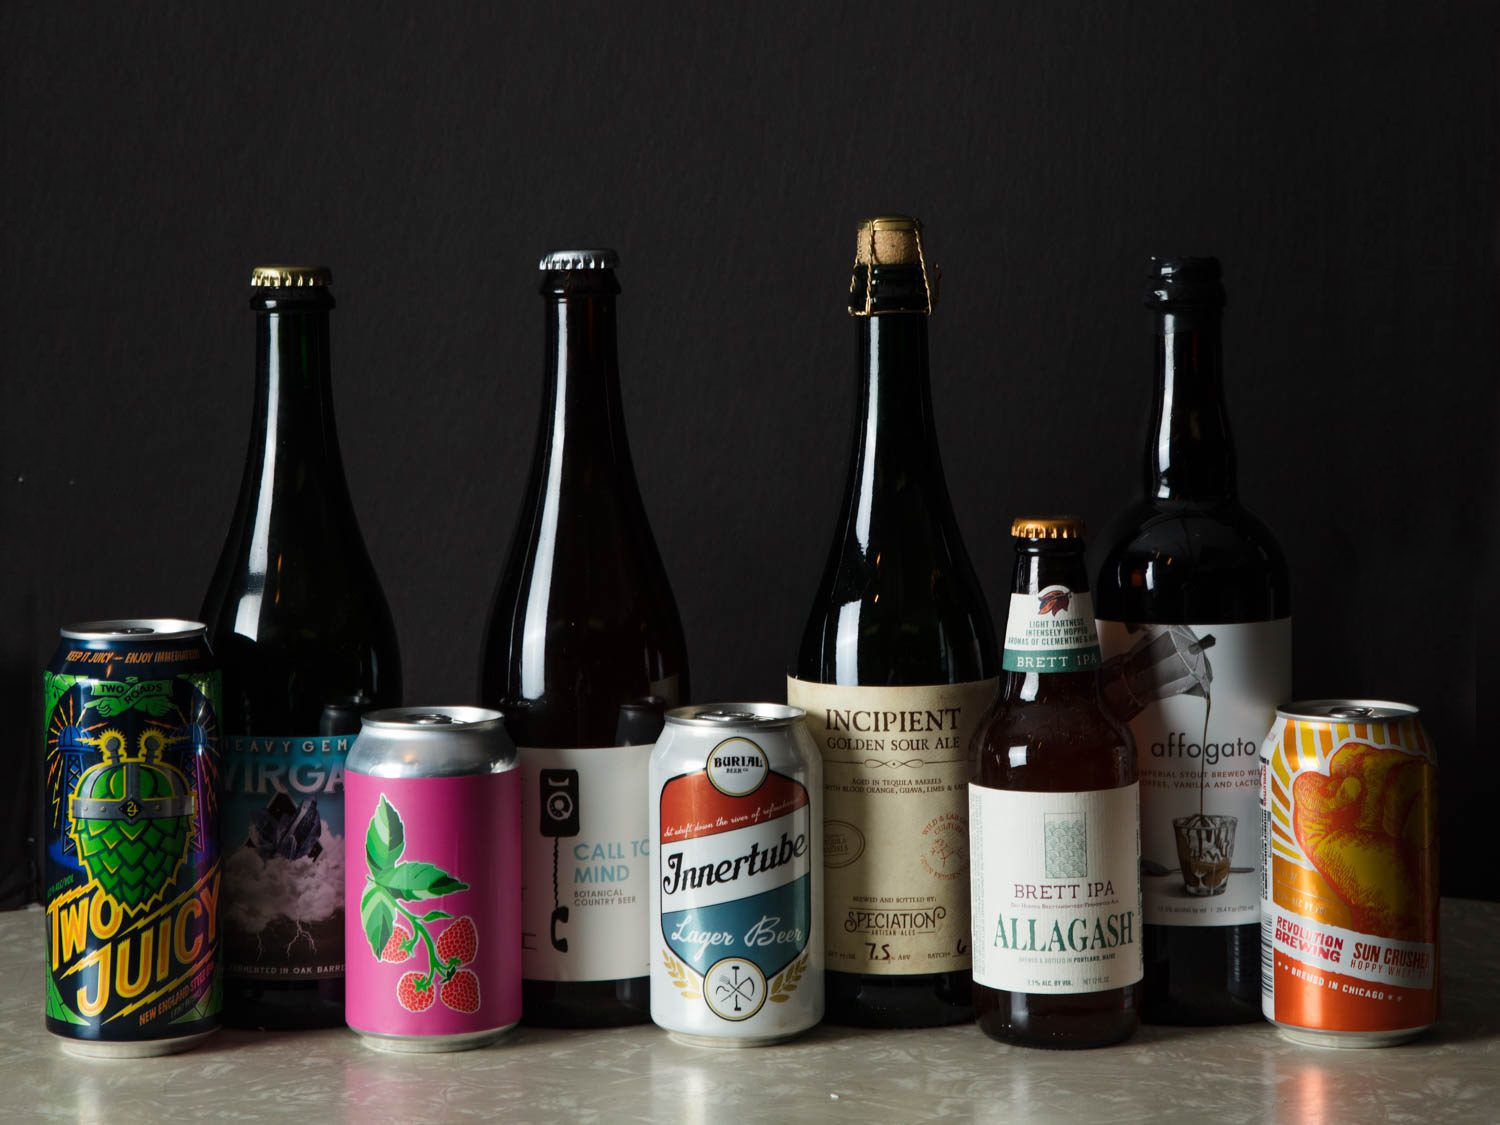 An assortment of beers in bottles and cans.